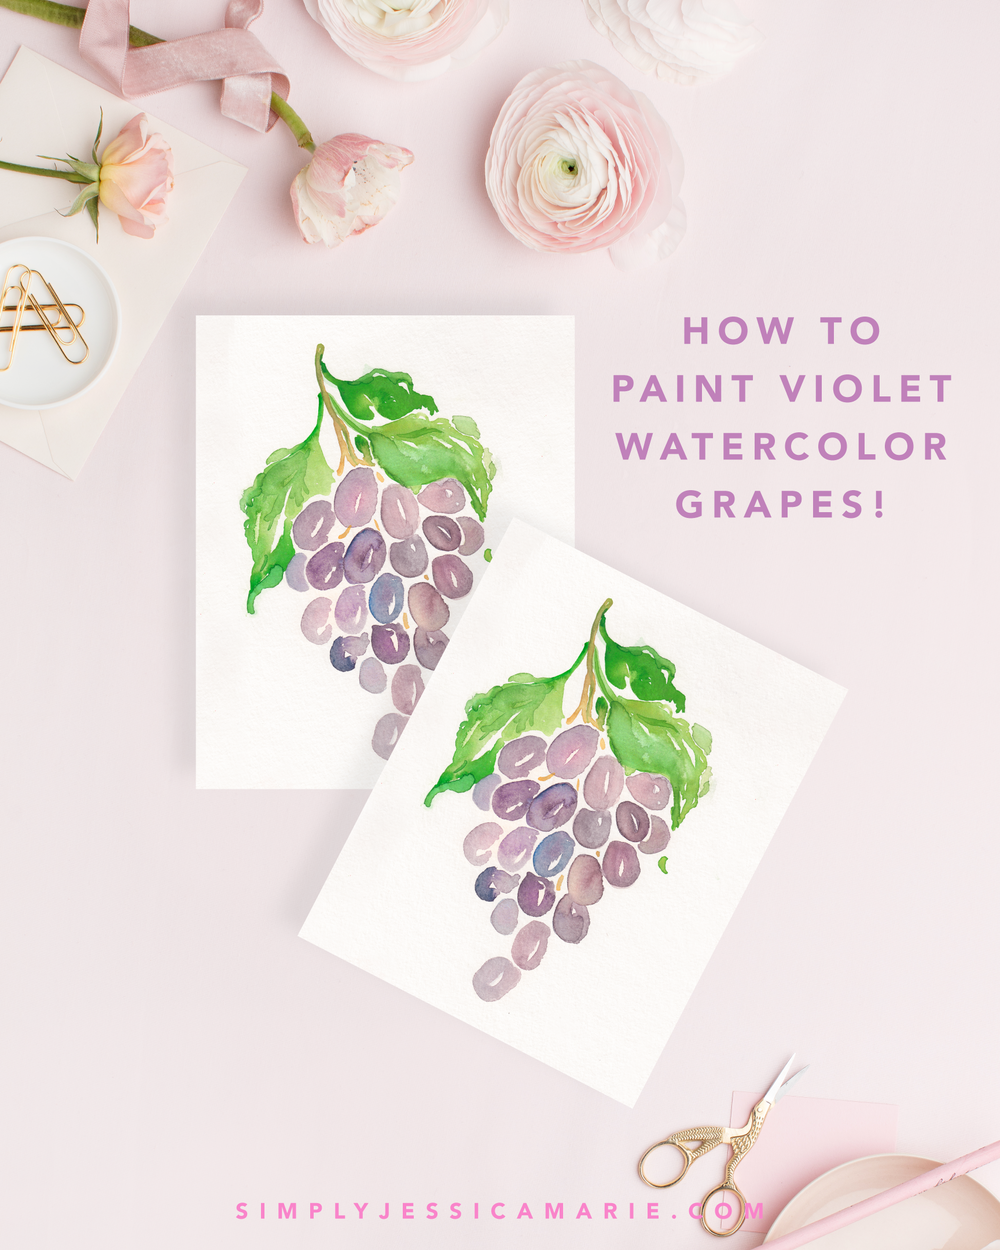 How to paint watercolor violet grapes! Fun and free watercolor videos by Simply Jessica Marie! Learn to mix new colors each week and paint with that color! | SC Stockshop